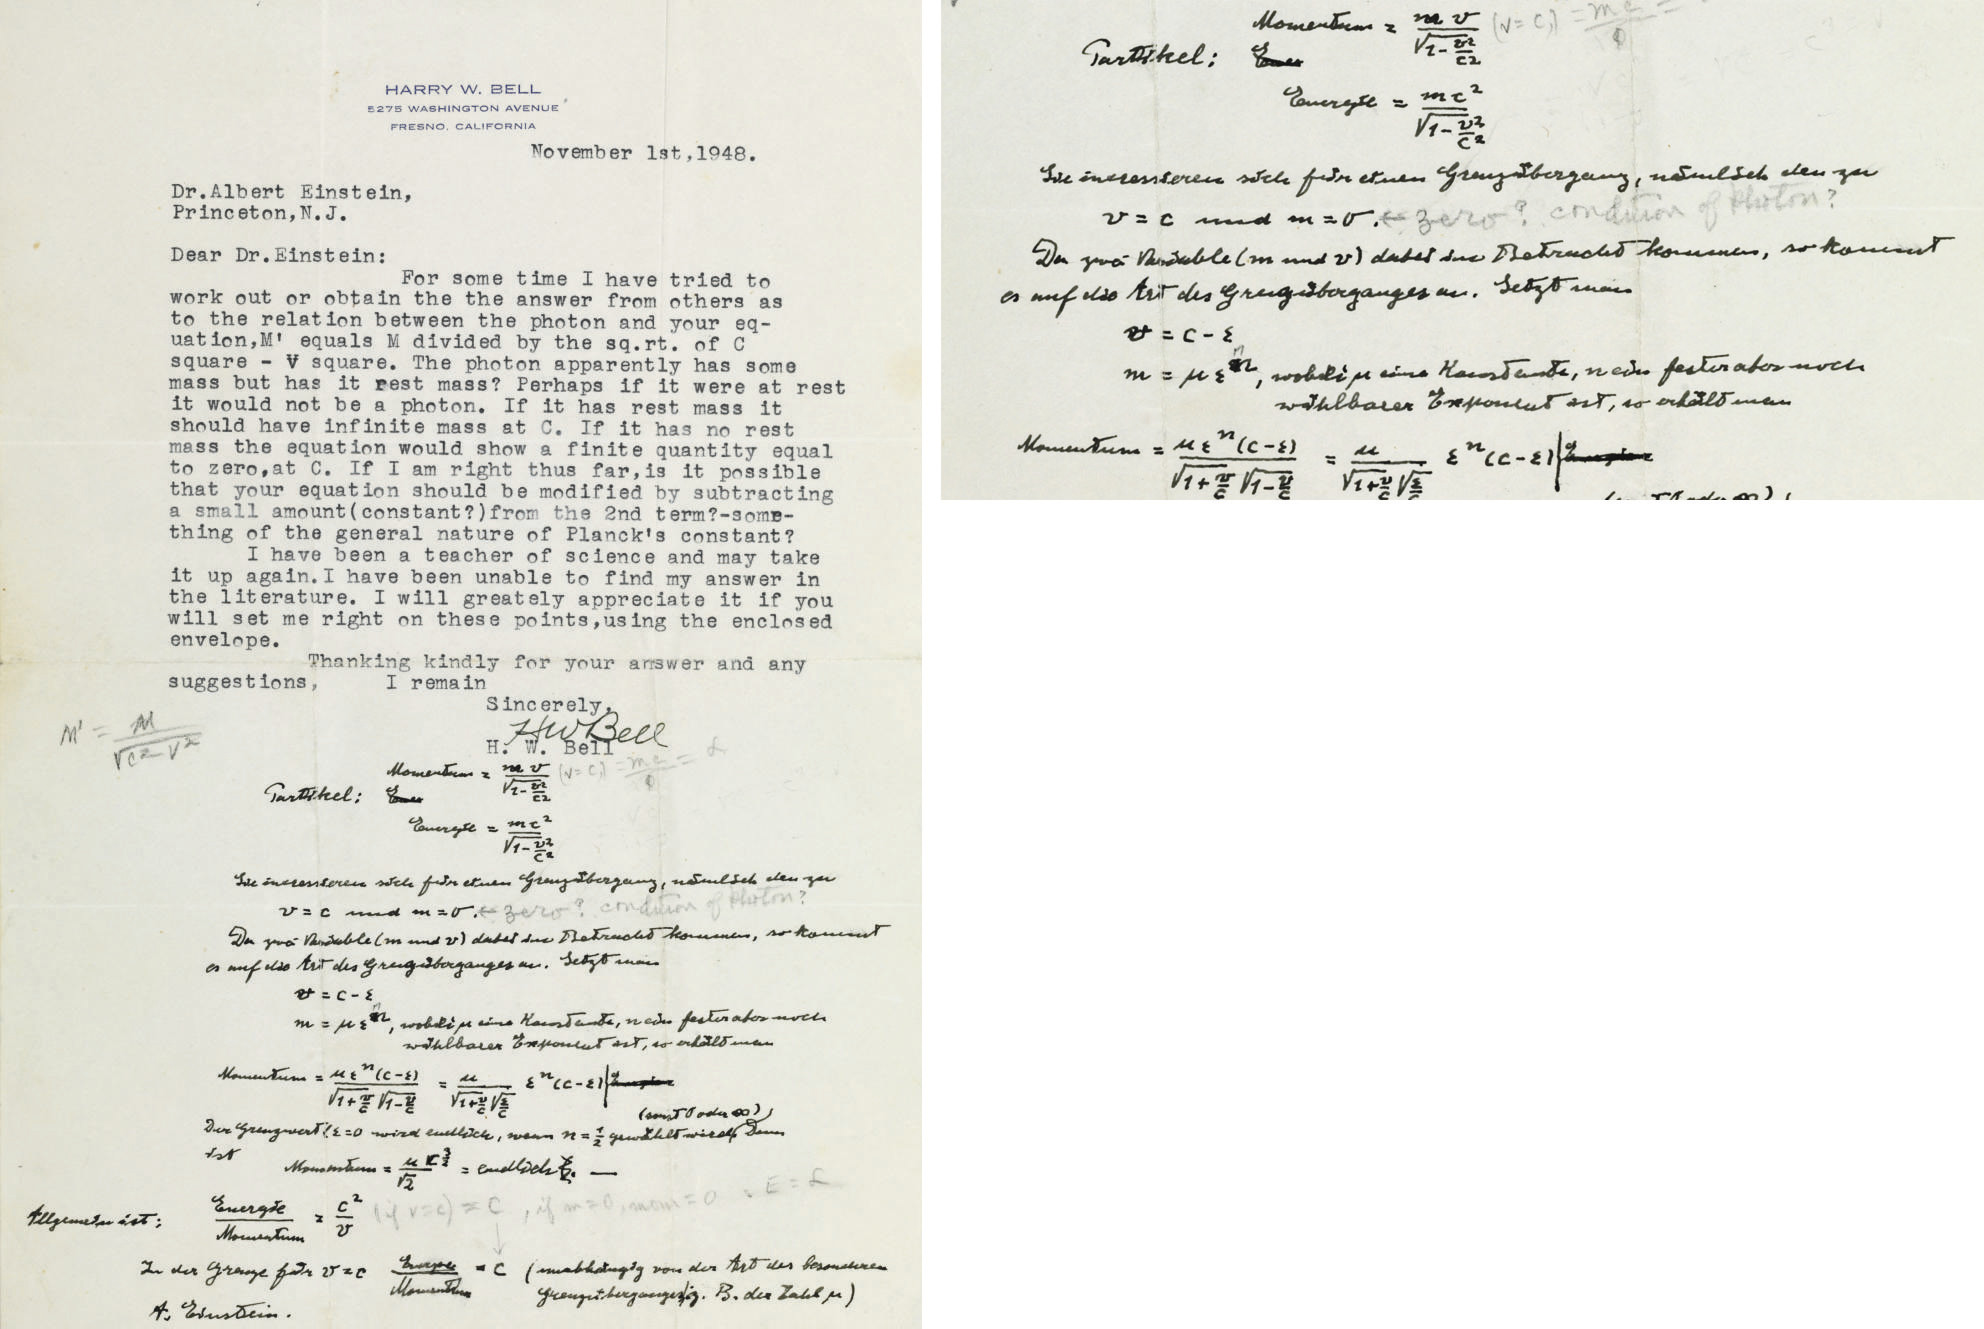 """EINSTEIN, Albert (1879-1955). Autograph scientific manuscript signed (""""A. Einstein""""), INCLUDING HIS FAMOUS FORMULA """"ENERGY=MC2..."""", added in blank portion of a Typed letter signed from H. W. Bell to Einstein, 1 November 1948. 1 page, 4to, with pencil notations in another hand. Einstein's text in German."""